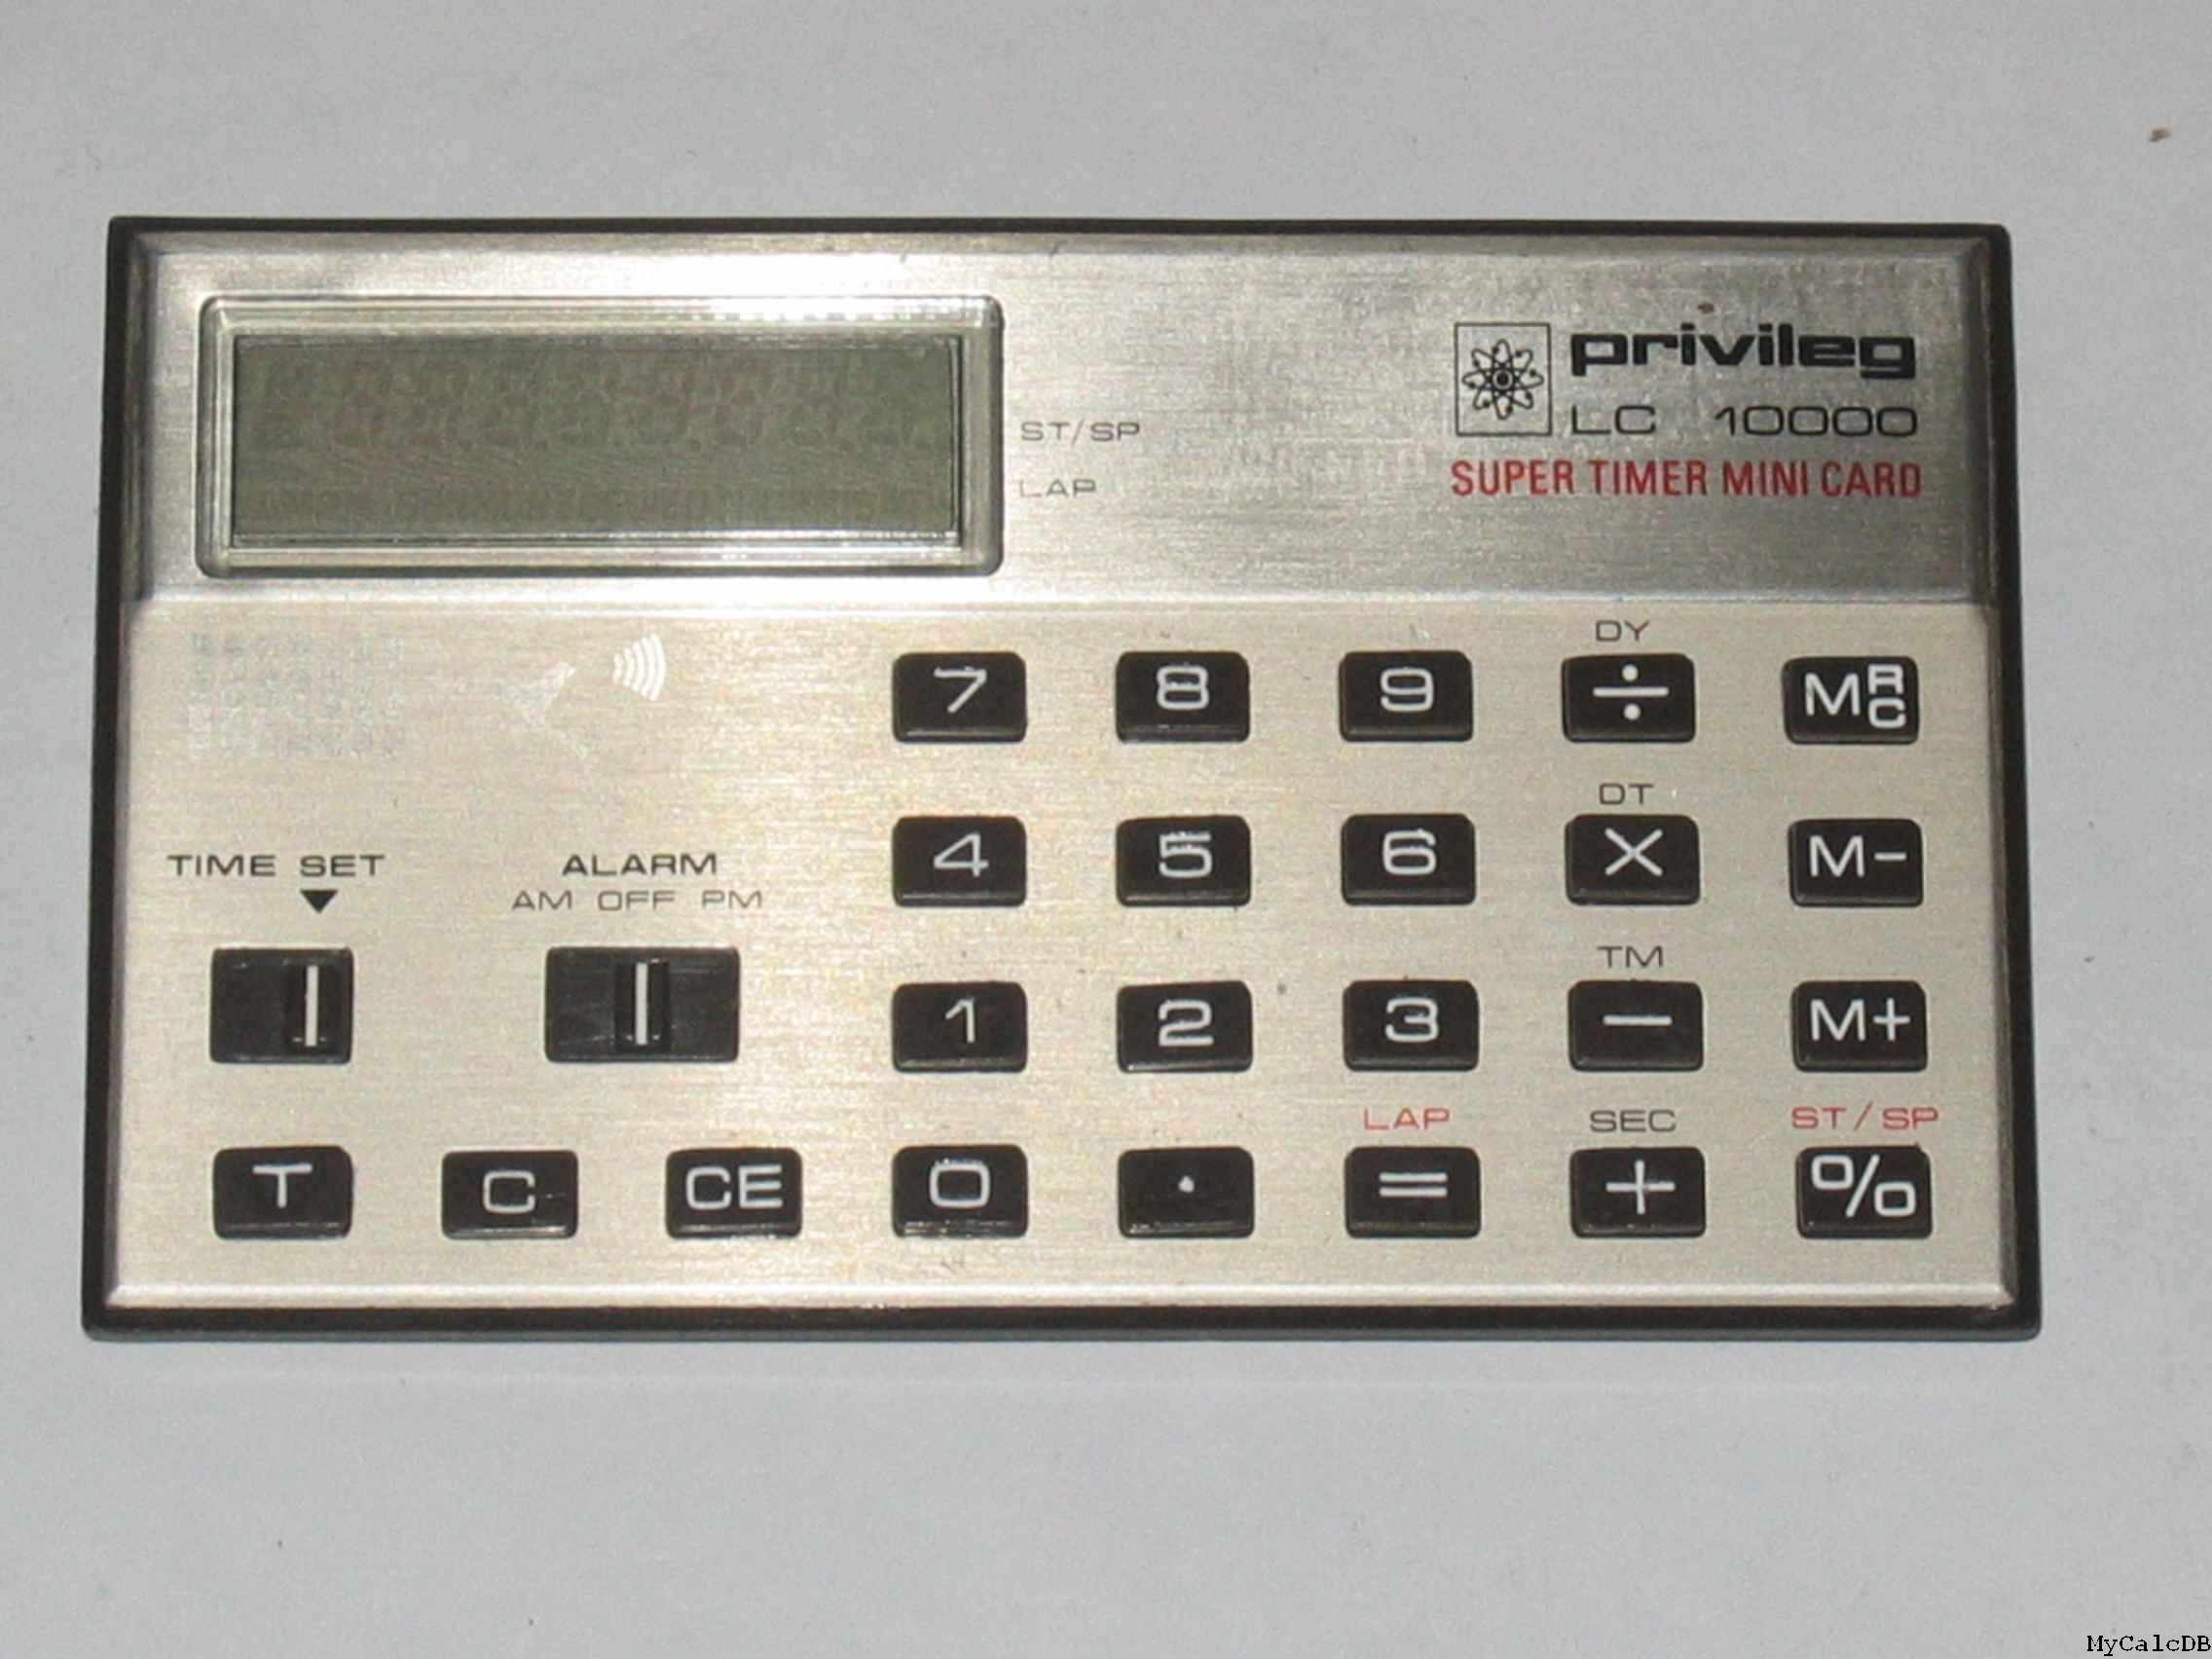 Privileg / Quelle LC 10000 SUPER TIMER MINI CARD